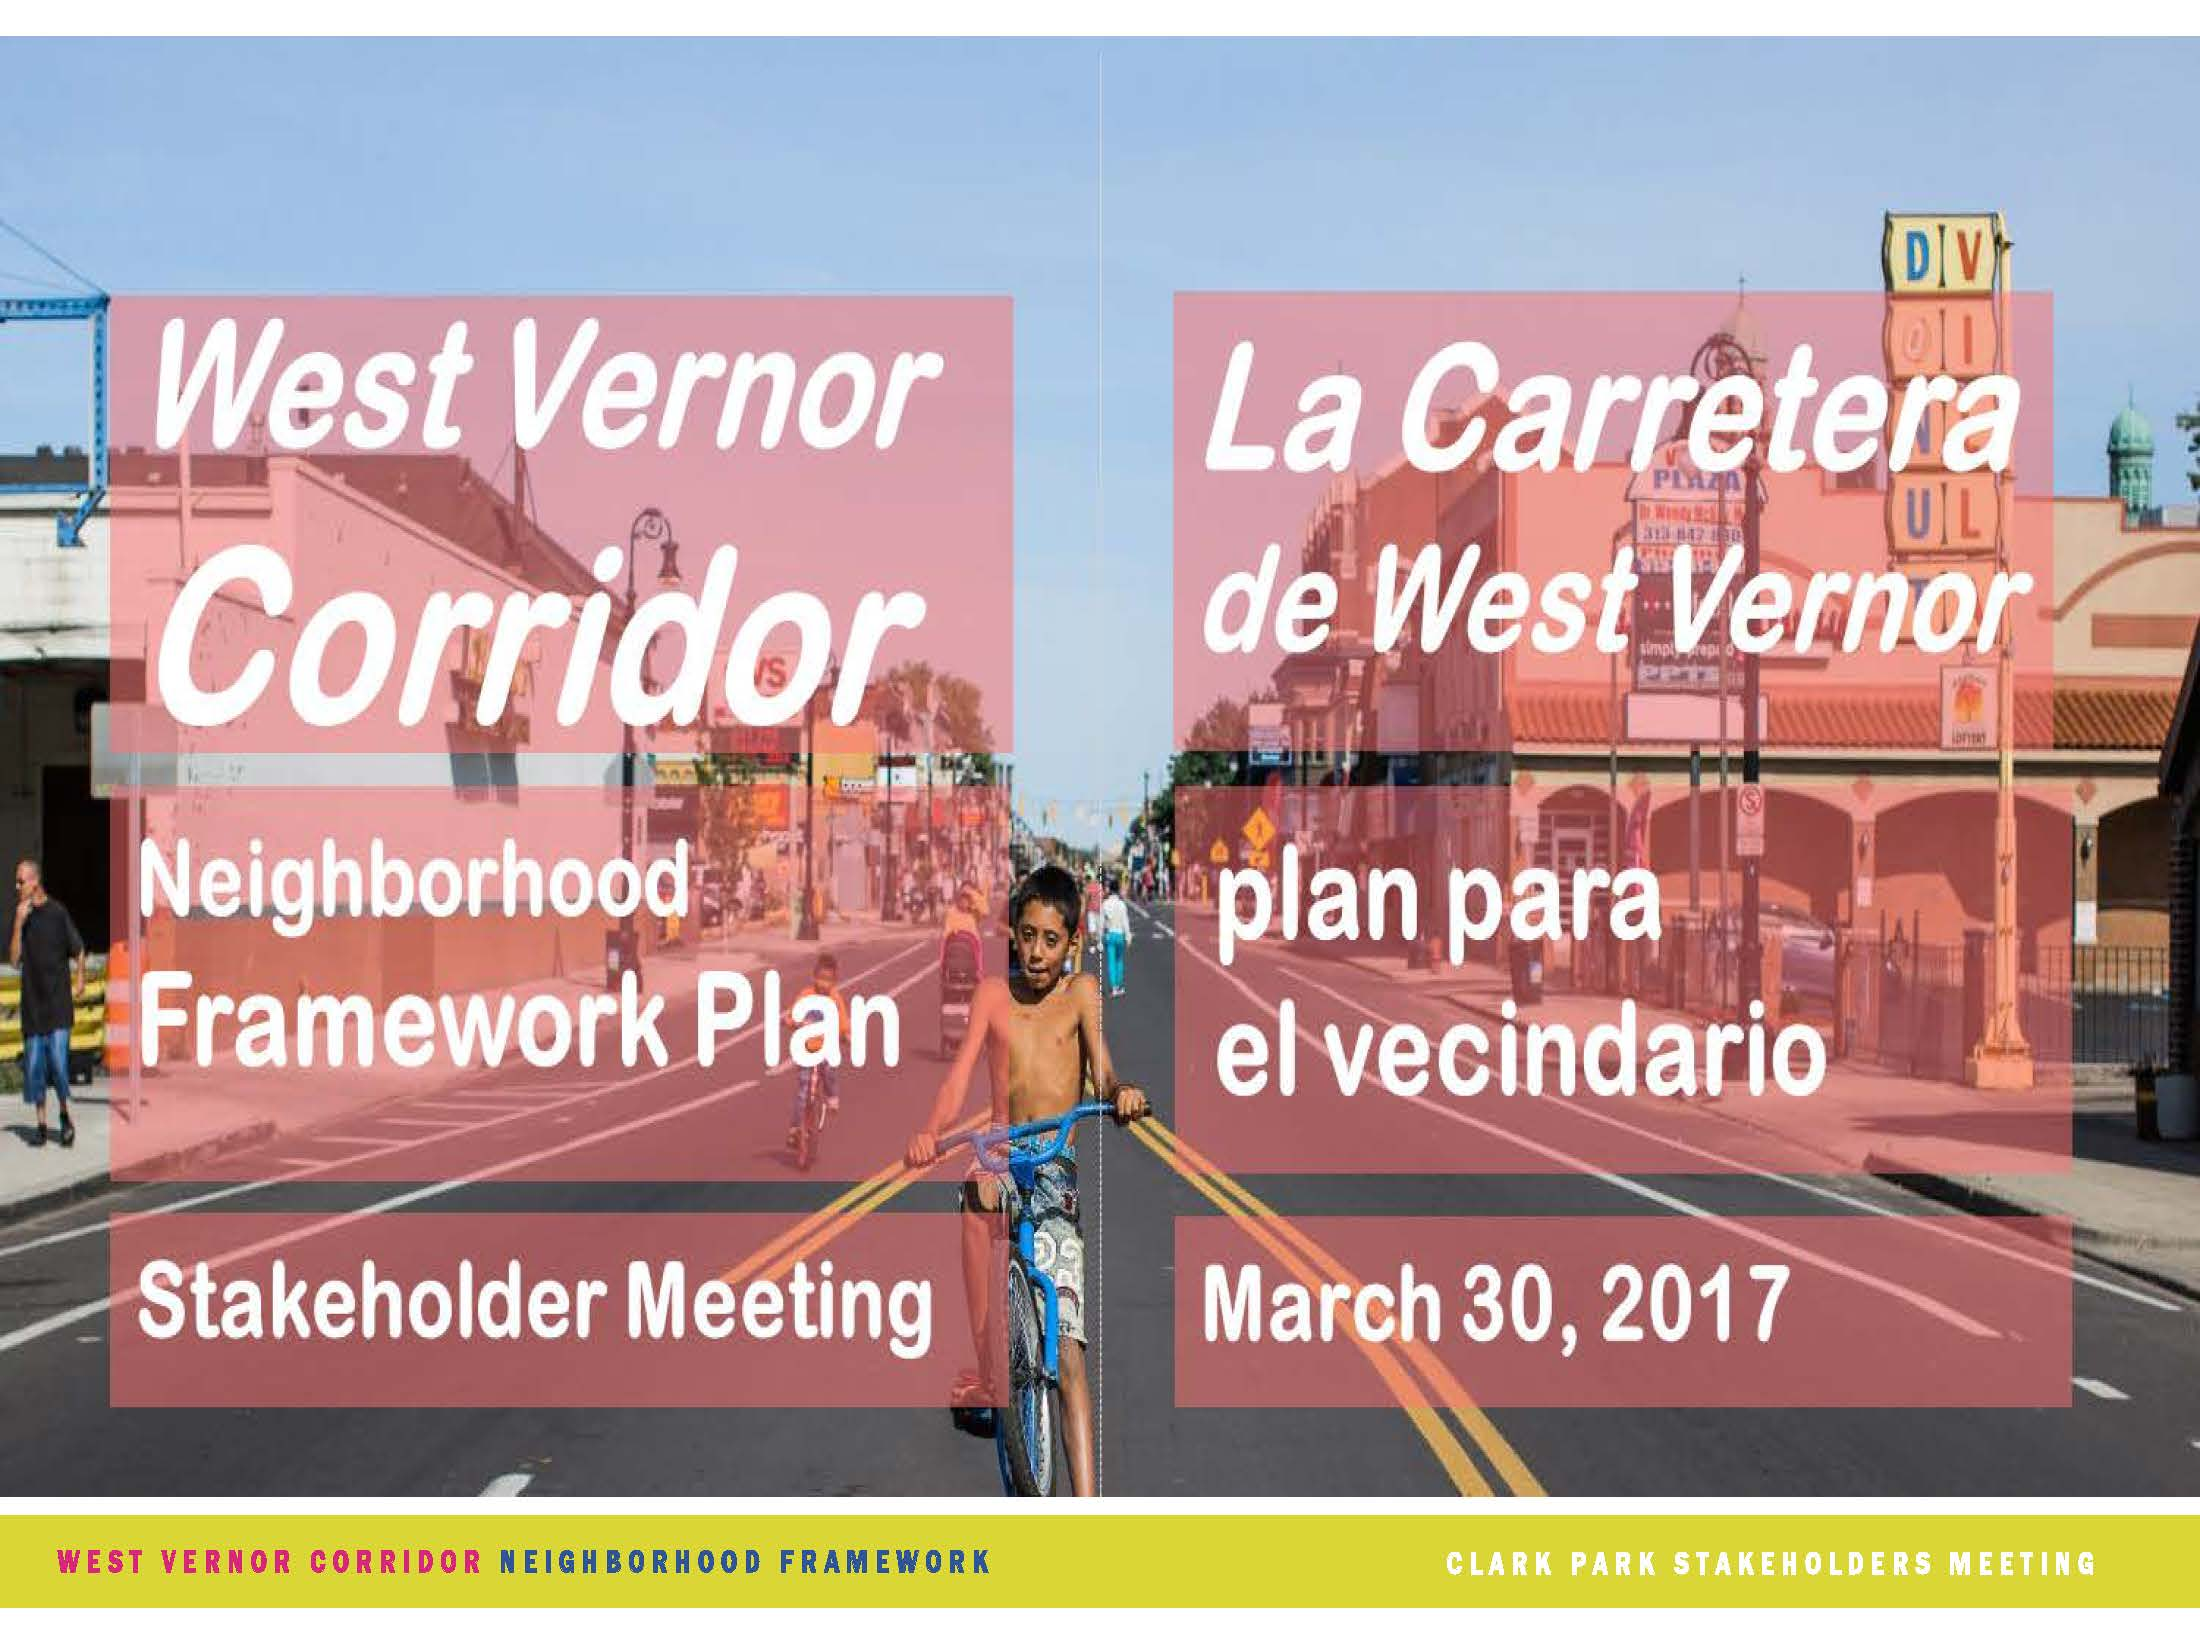 west vernor neighborhood framework plan